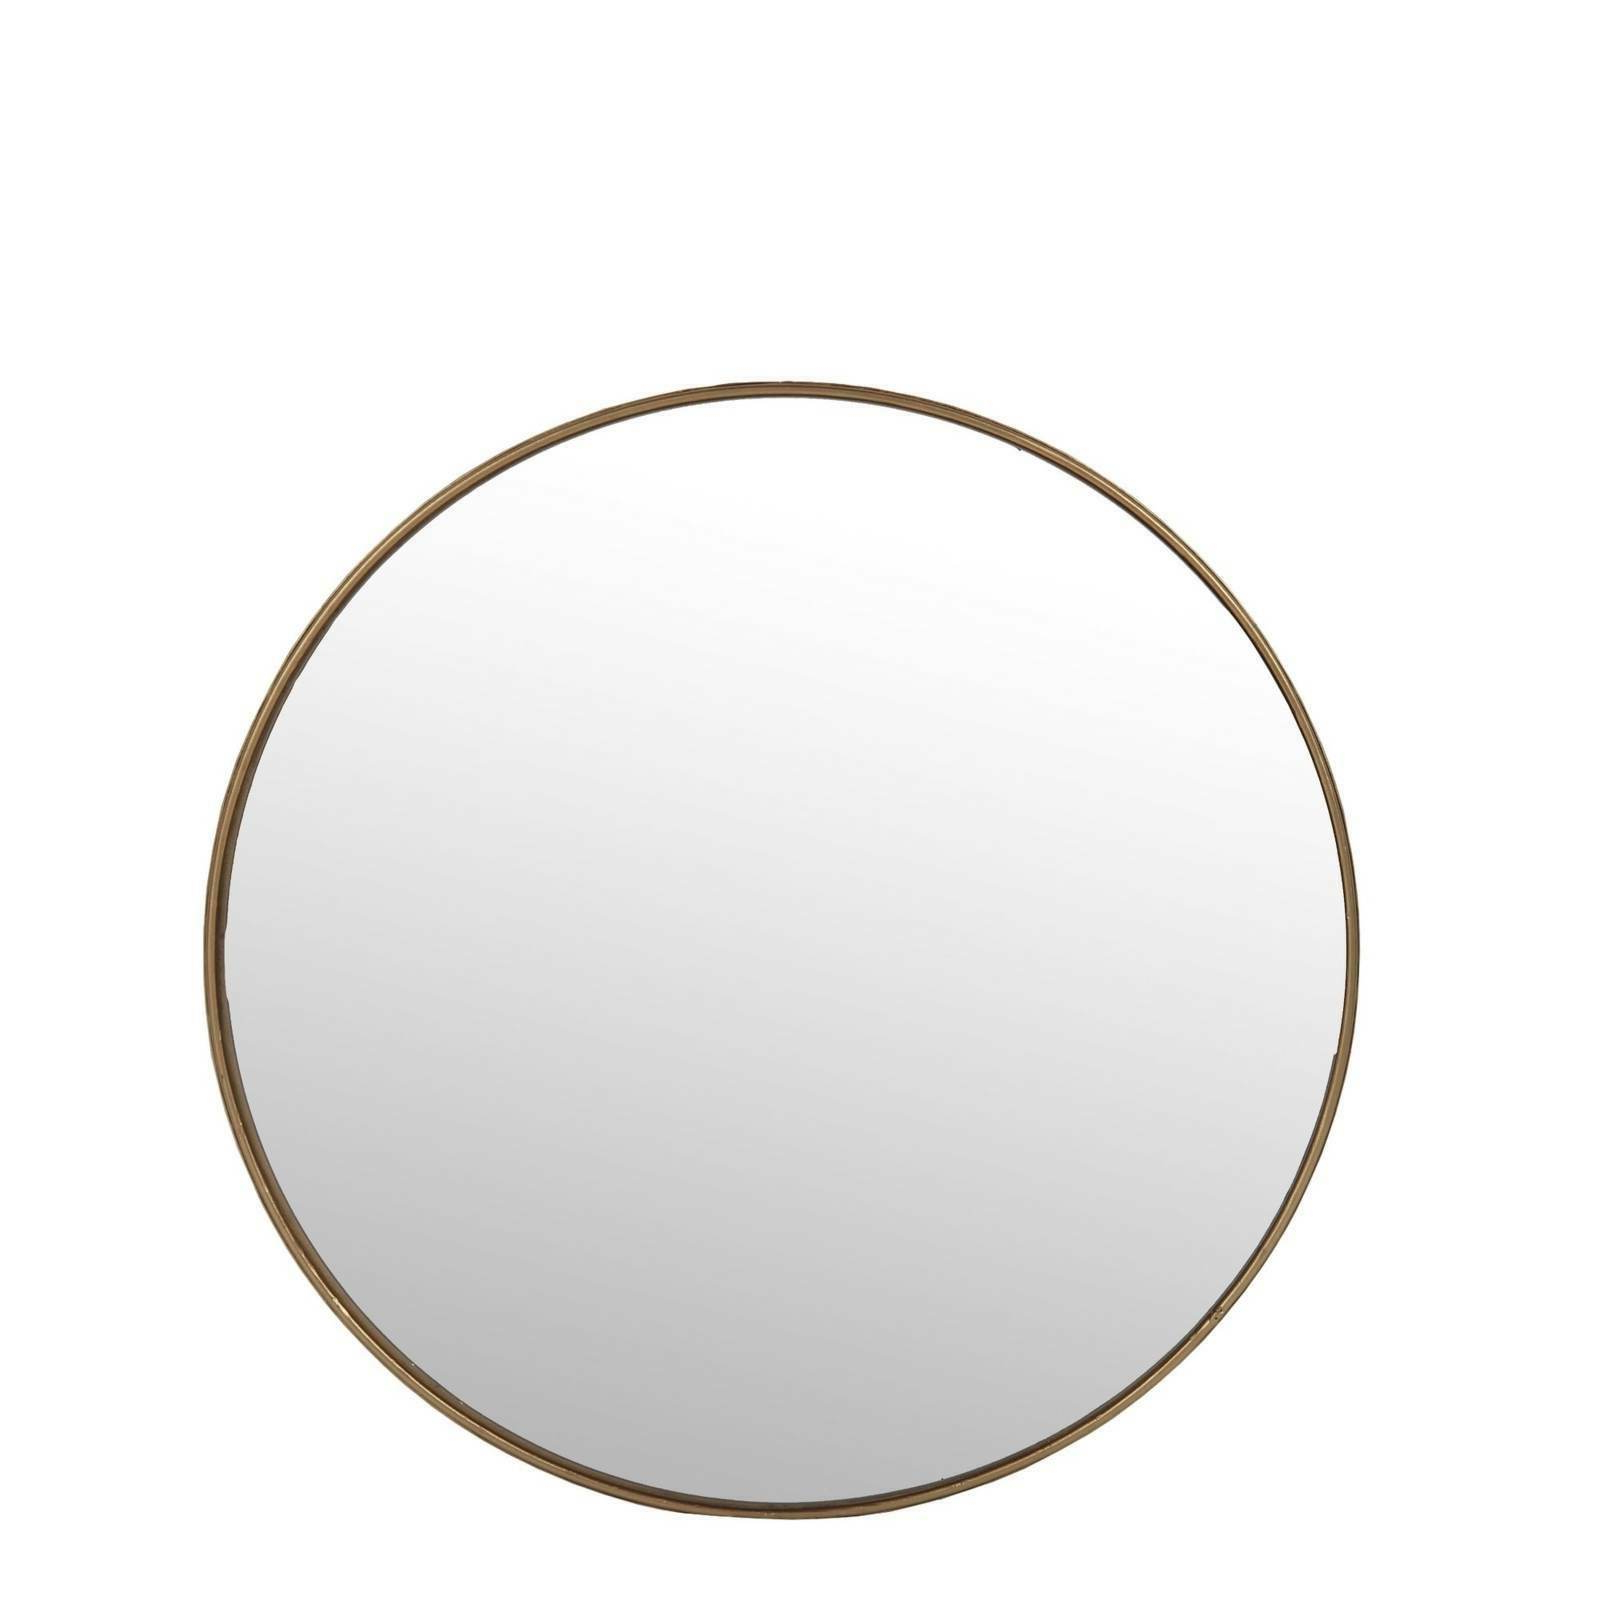 Vertical Round Wall Mirrors Throughout Most Up To Date Details About Large Round Wall Mirror Gold Frame Wall Mounted Vertical Orientation 15'' 32'' H (View 5 of 20)